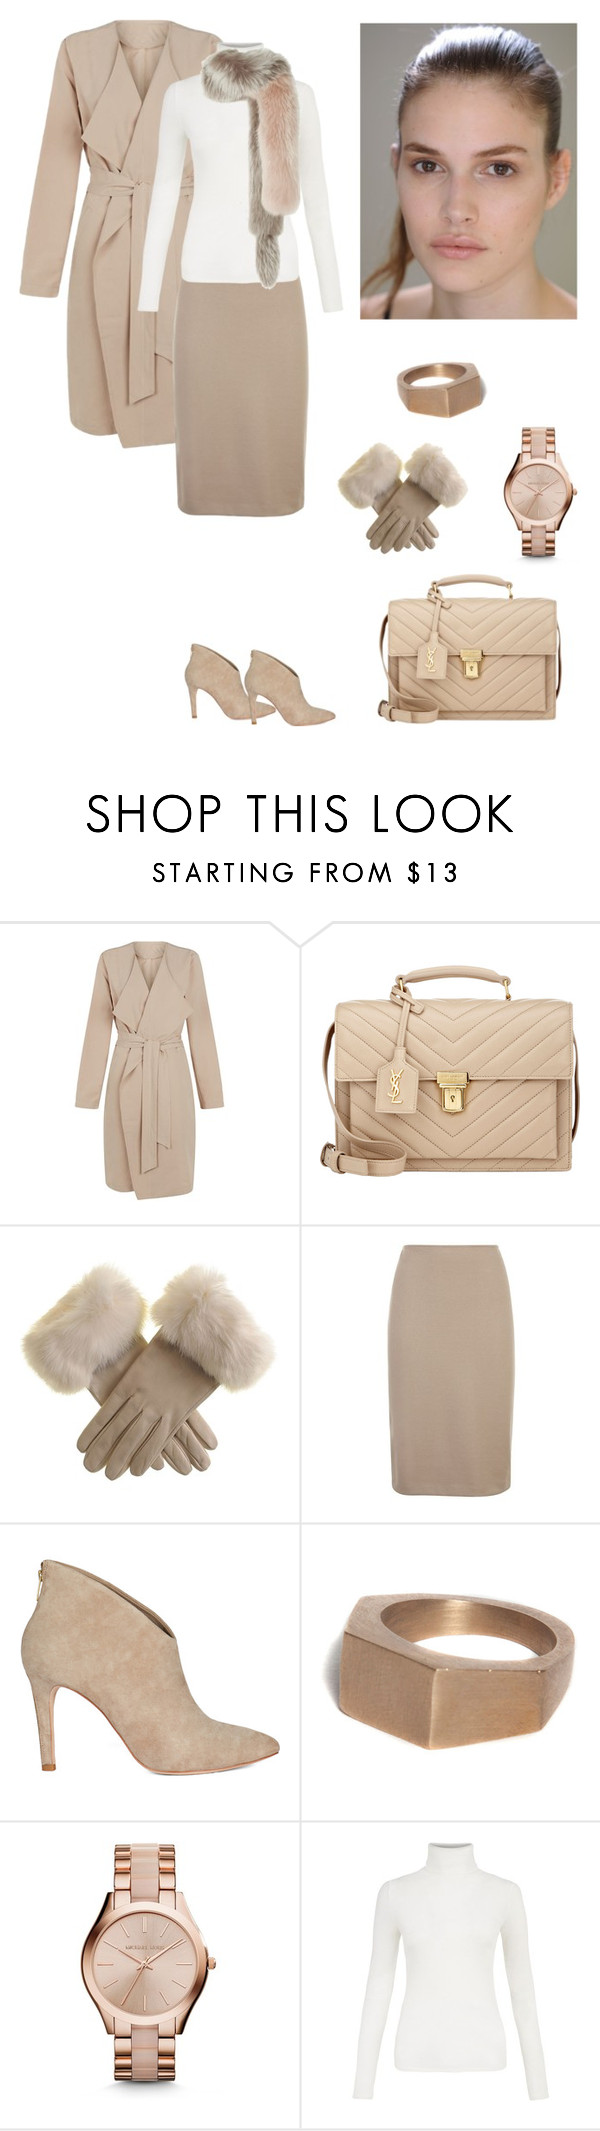 """""""Fur Details"""" by dezaval ❤ liked on Polyvore featuring First & I, Yves Saint Laurent, Armani Collezioni, Bare Collection, Michael Kors and Lanvin"""